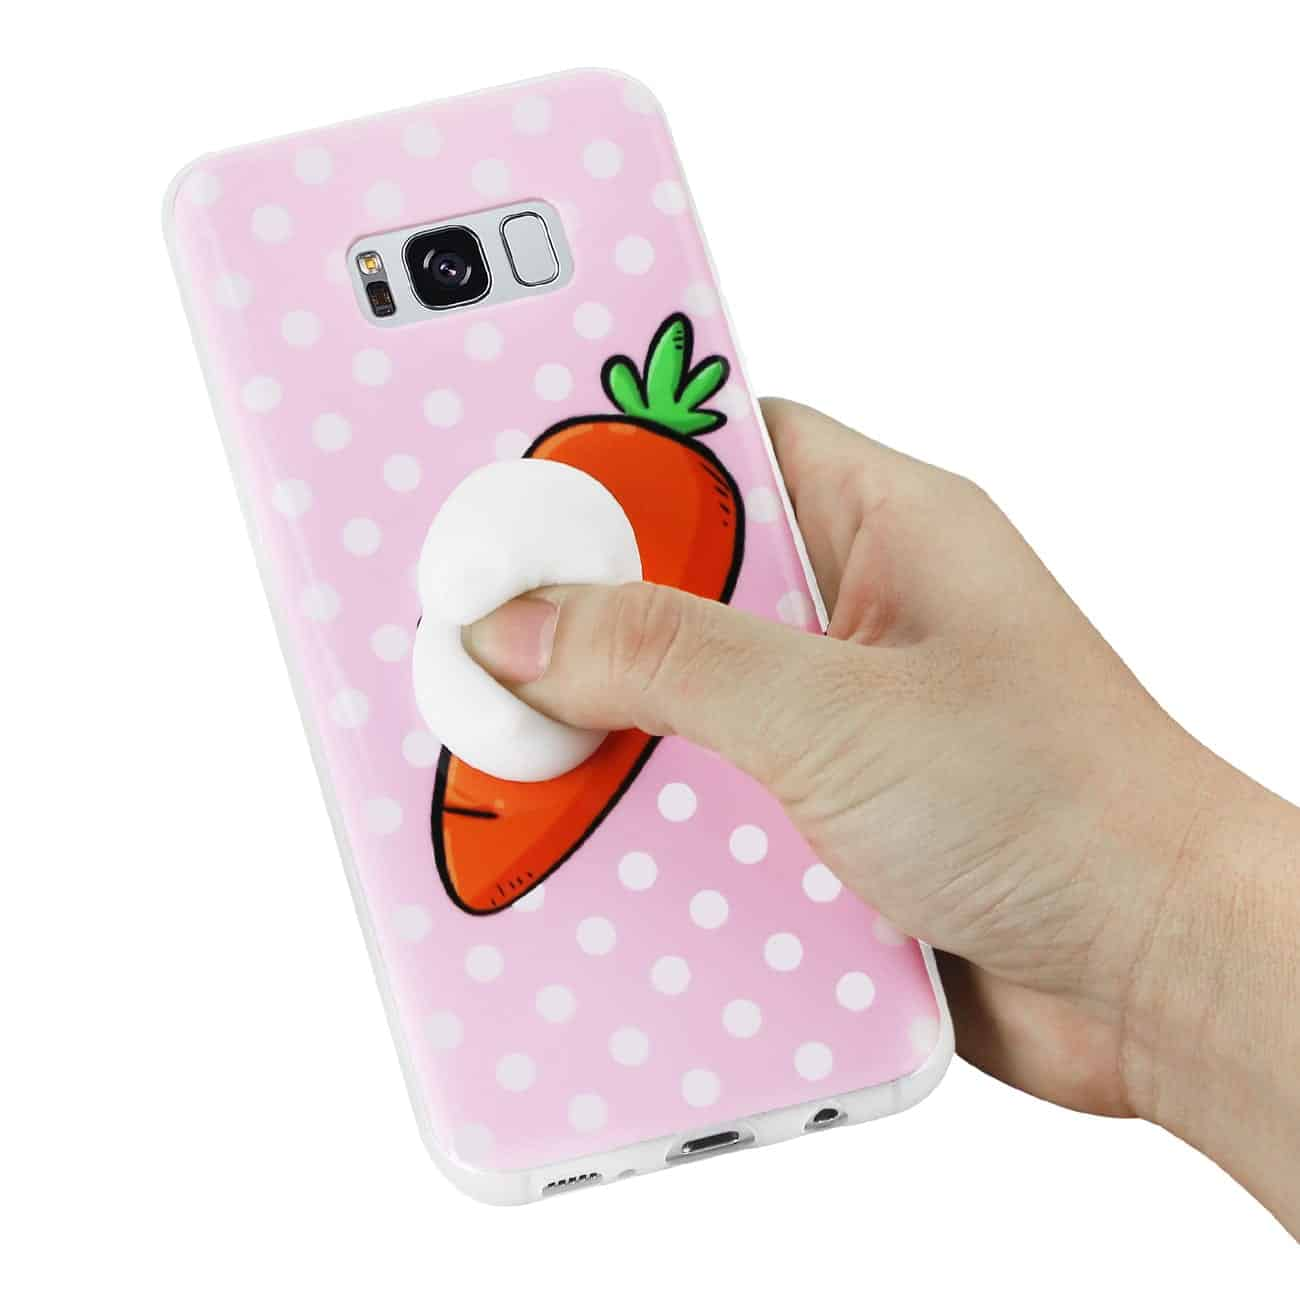 SAMSUNG GALAXY S8 EDGE TPU DESIGN CASE WITH  3D SOFT SILICONE POKE SQUISHY RABBIT